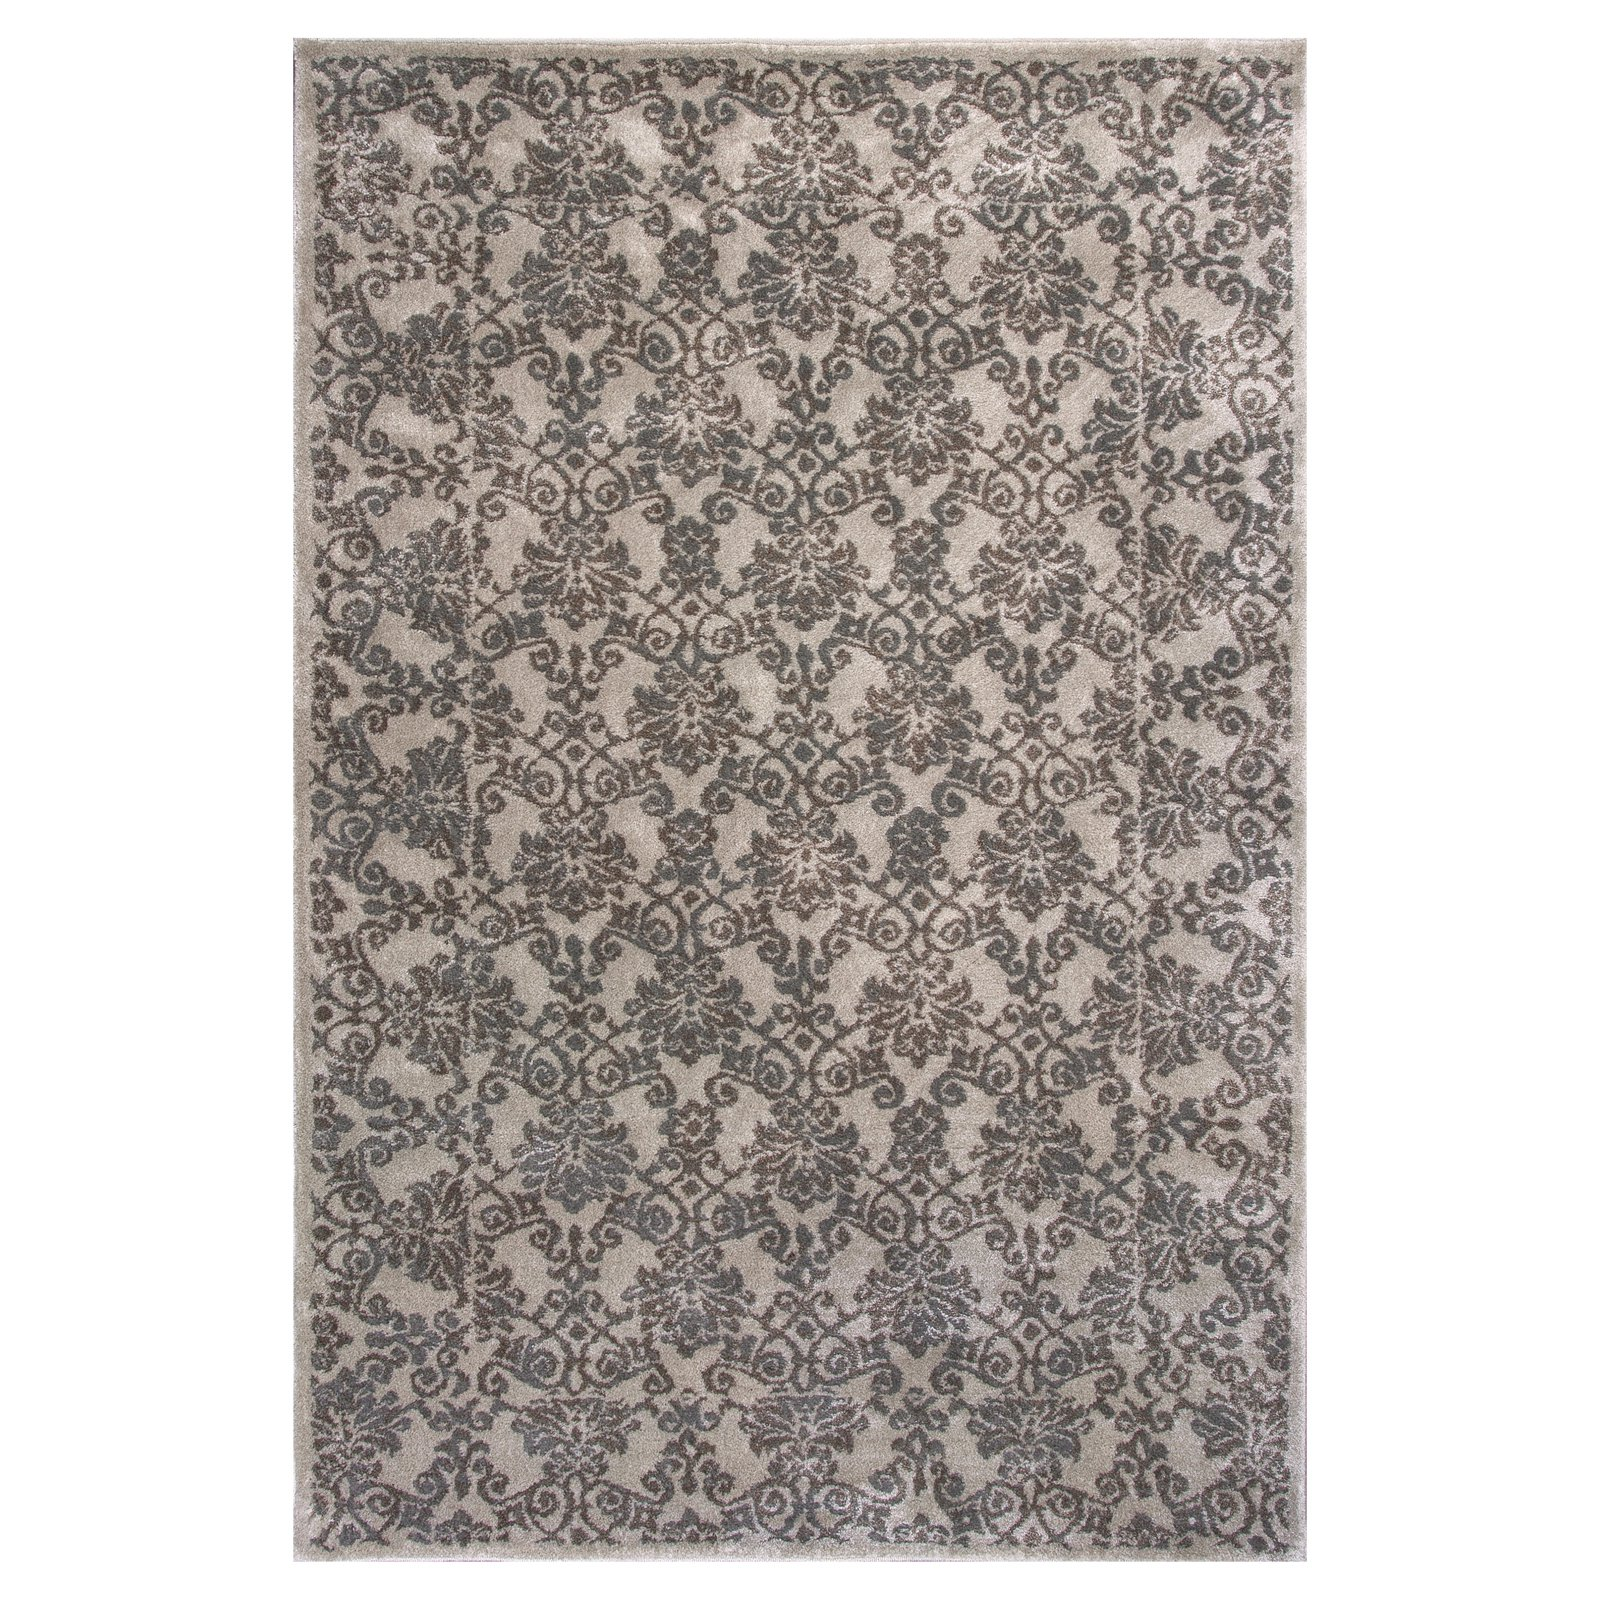 KAS Oriental Rugs Donny Osmond Home Timeless 8000 Tranquility Area Rug